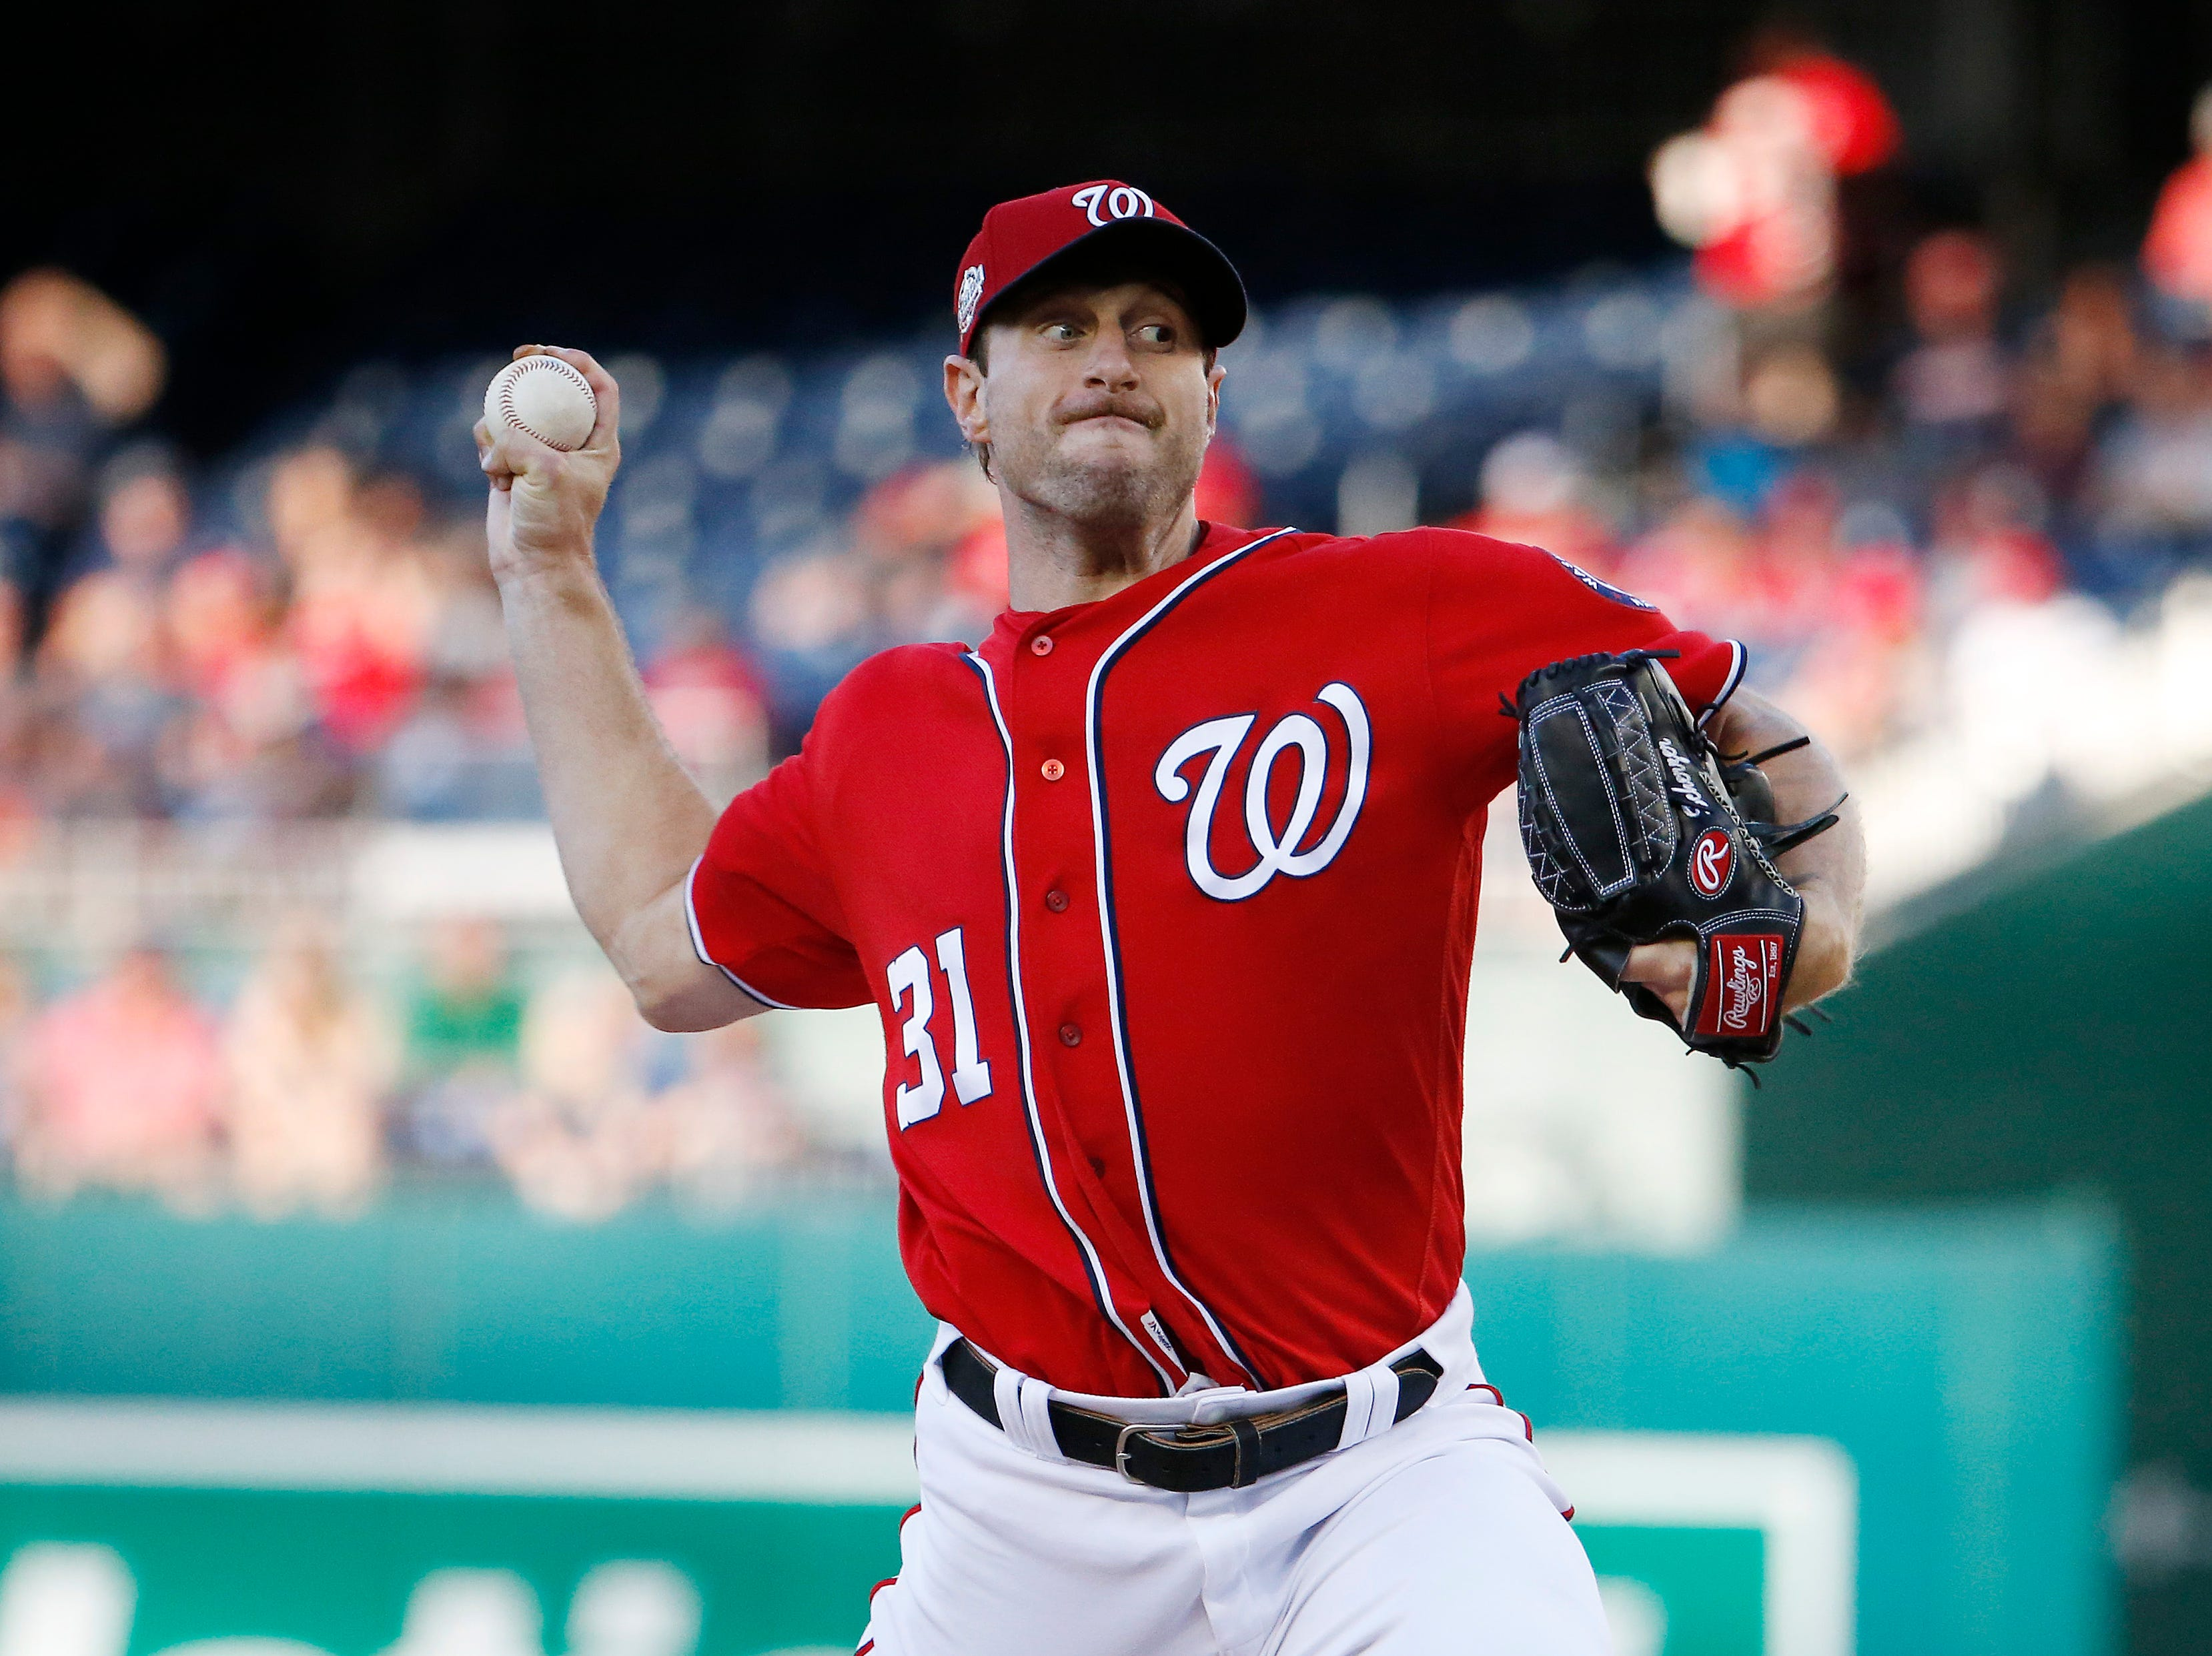 $210 million: Max Scherzer, Nationals (2015-2021)